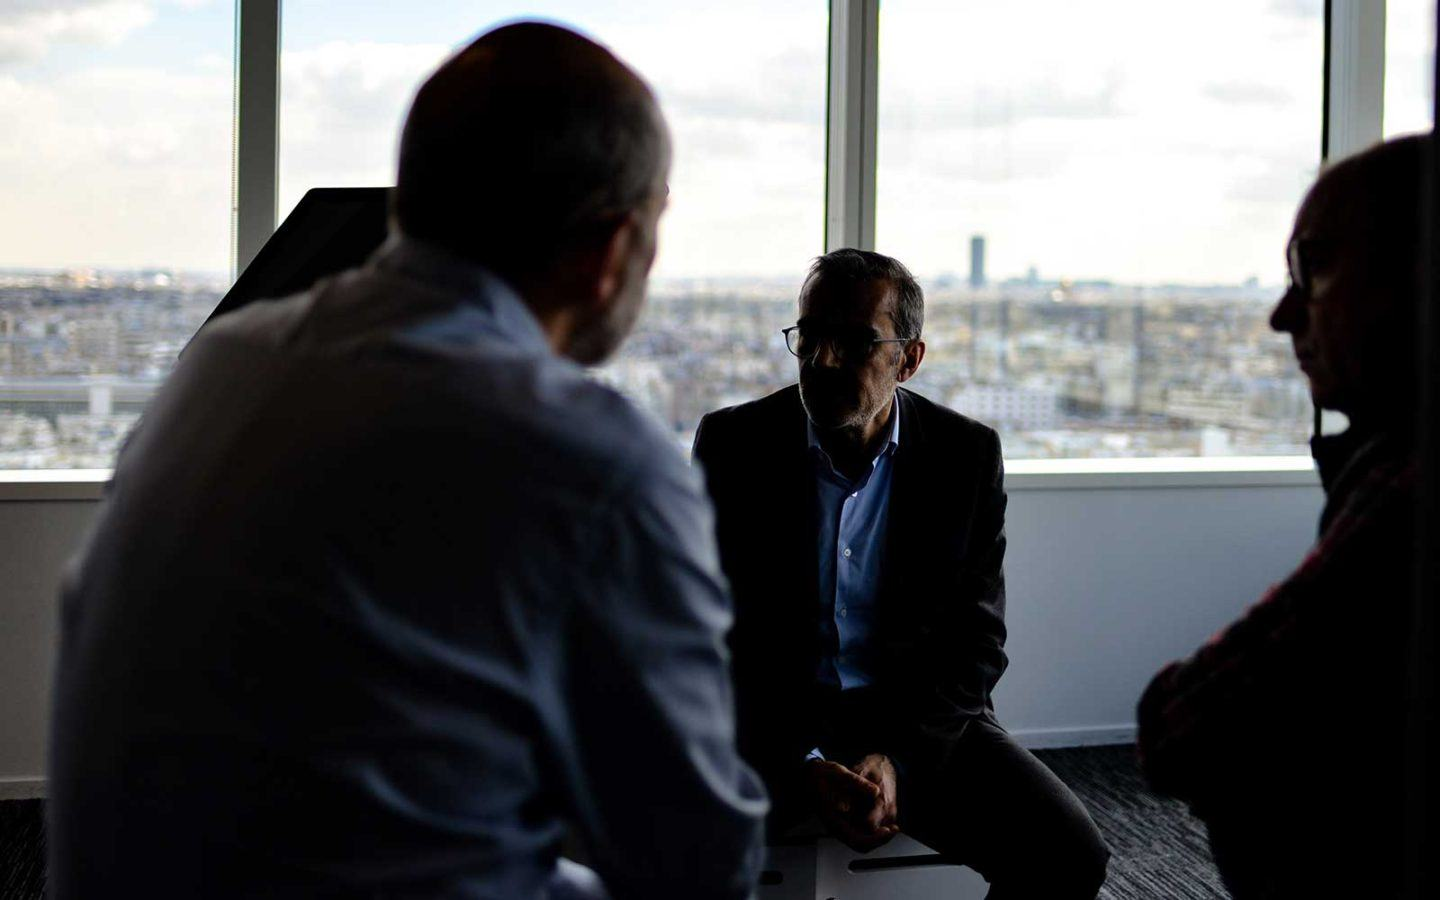 three people sitting in conversation in an office